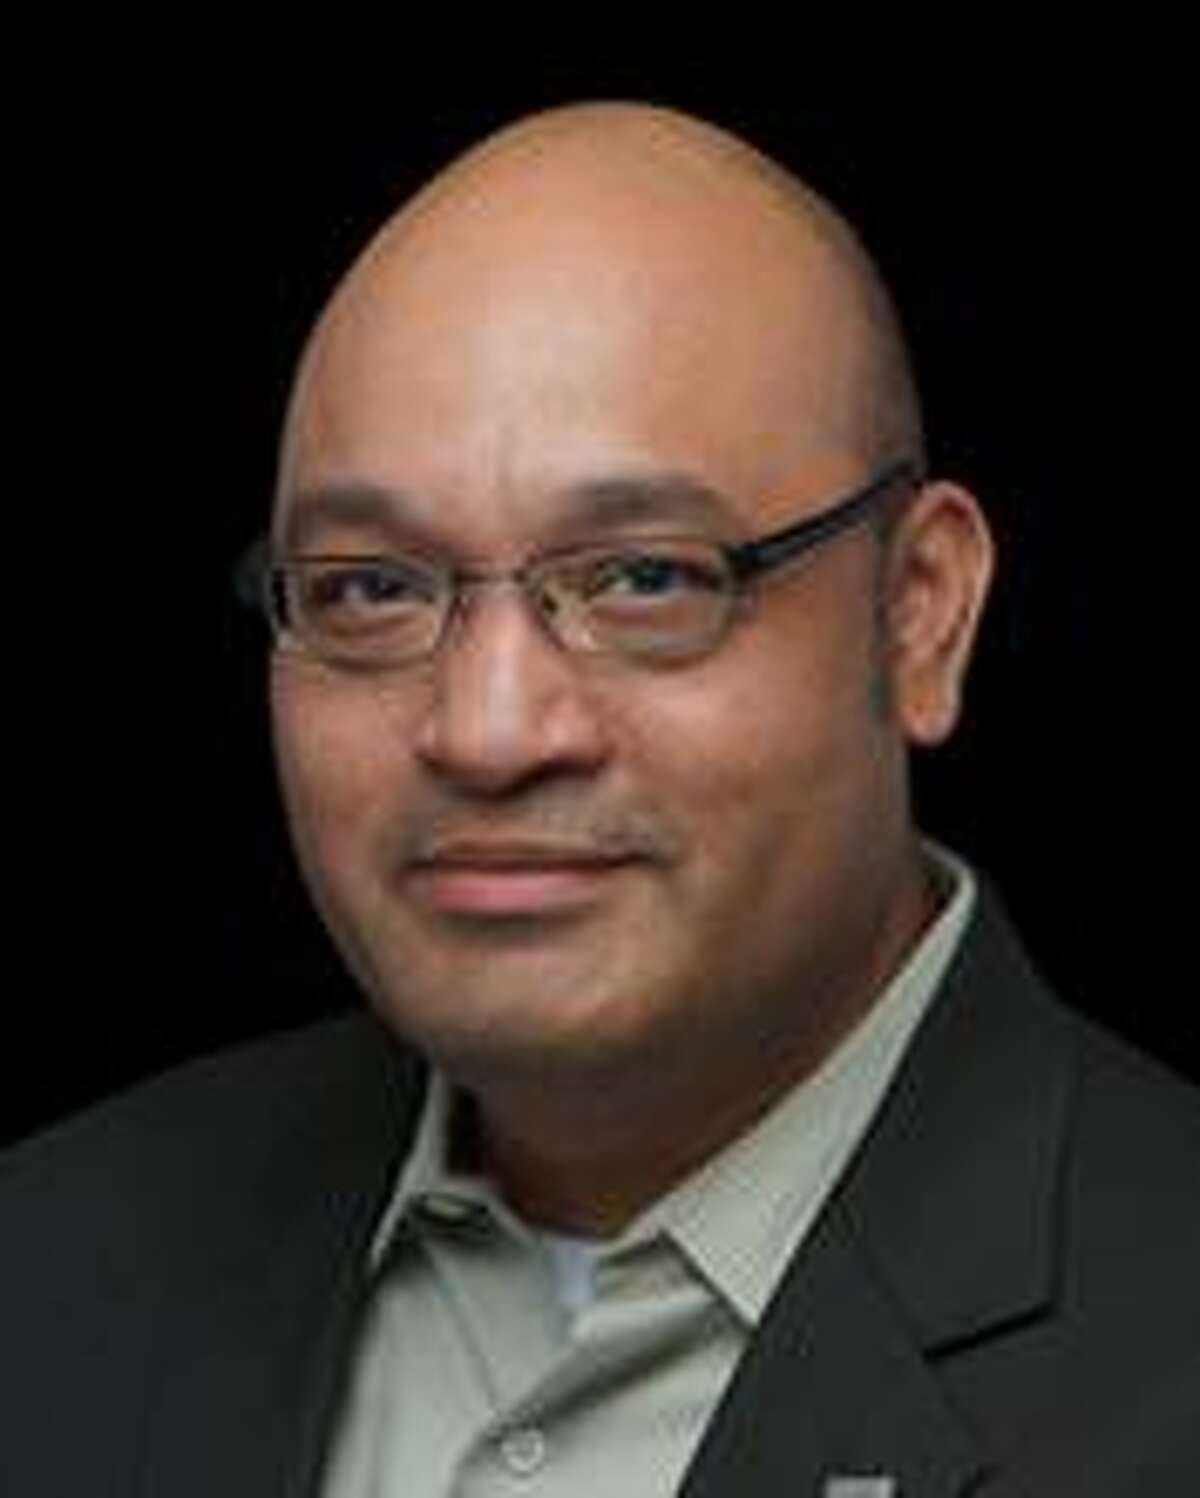 Jose A. Macias Jr., 50, the Alamo Colleges District's current District 2 trustee, is running in a special election against Gloria Ray to finish his term.